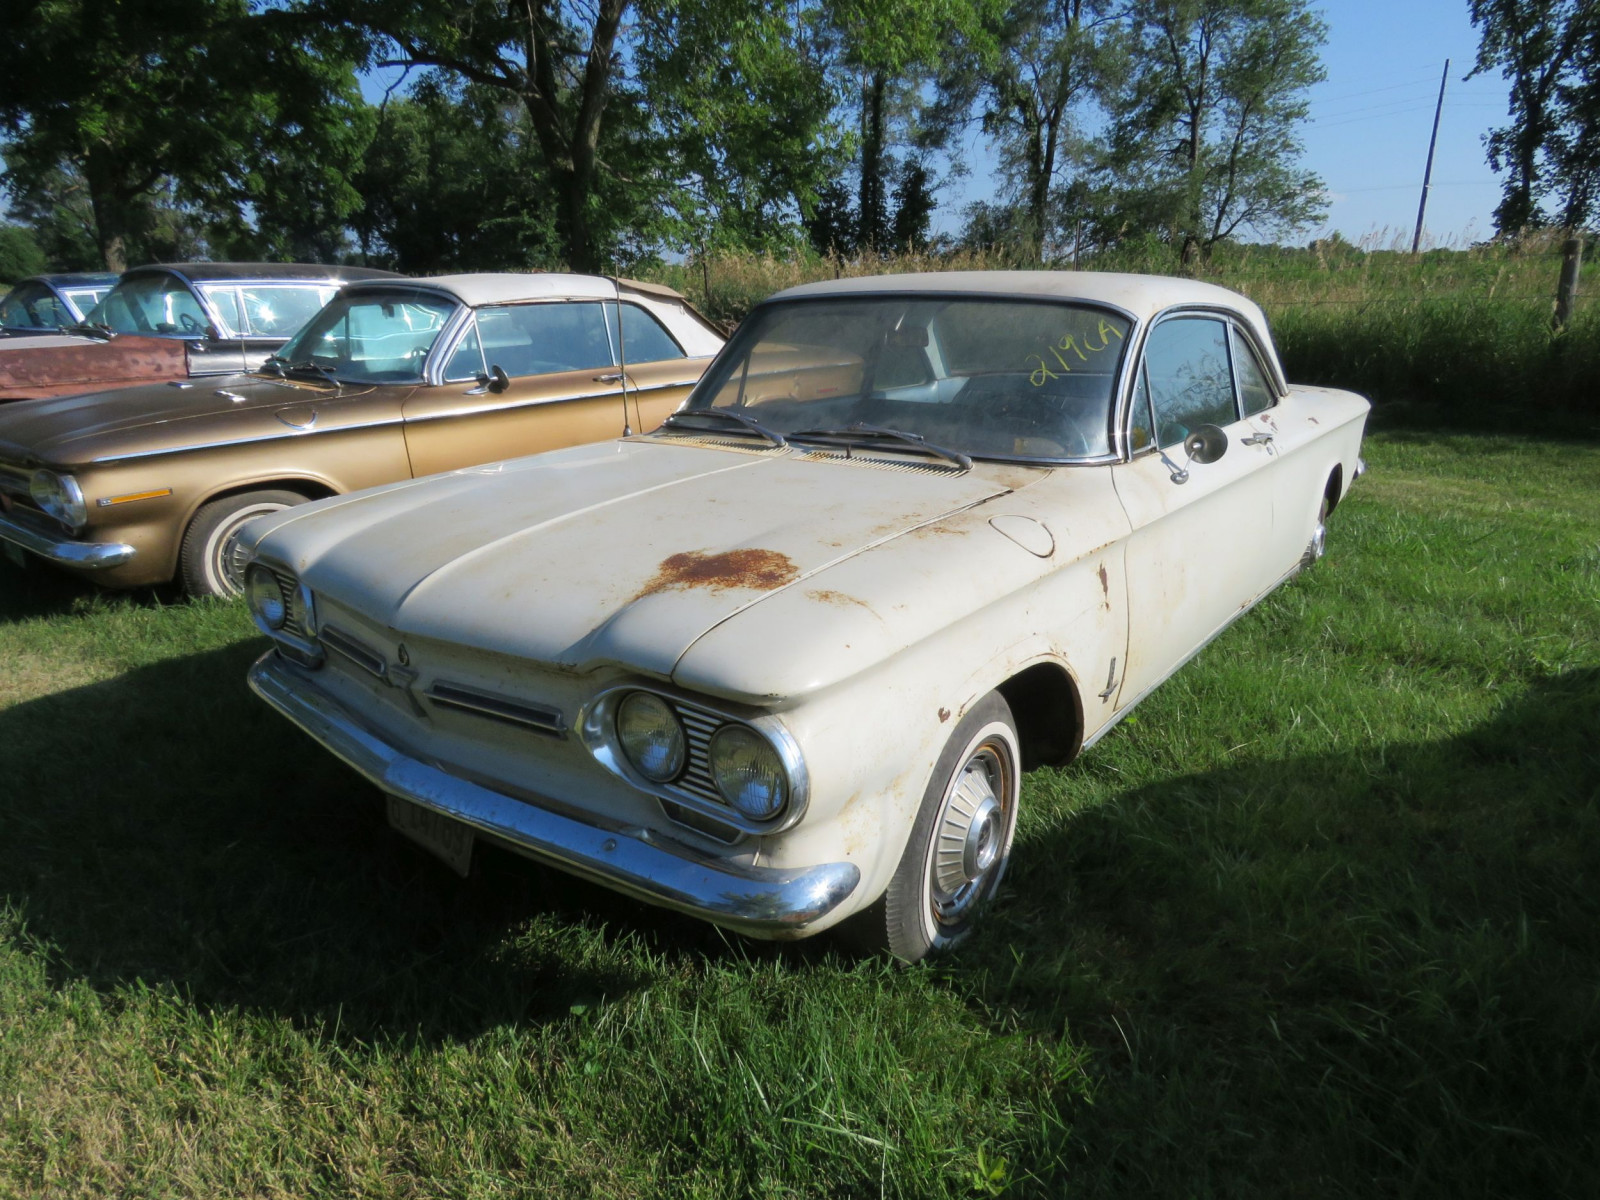 1962 Chevrolet Corvair Coupe - Image 1